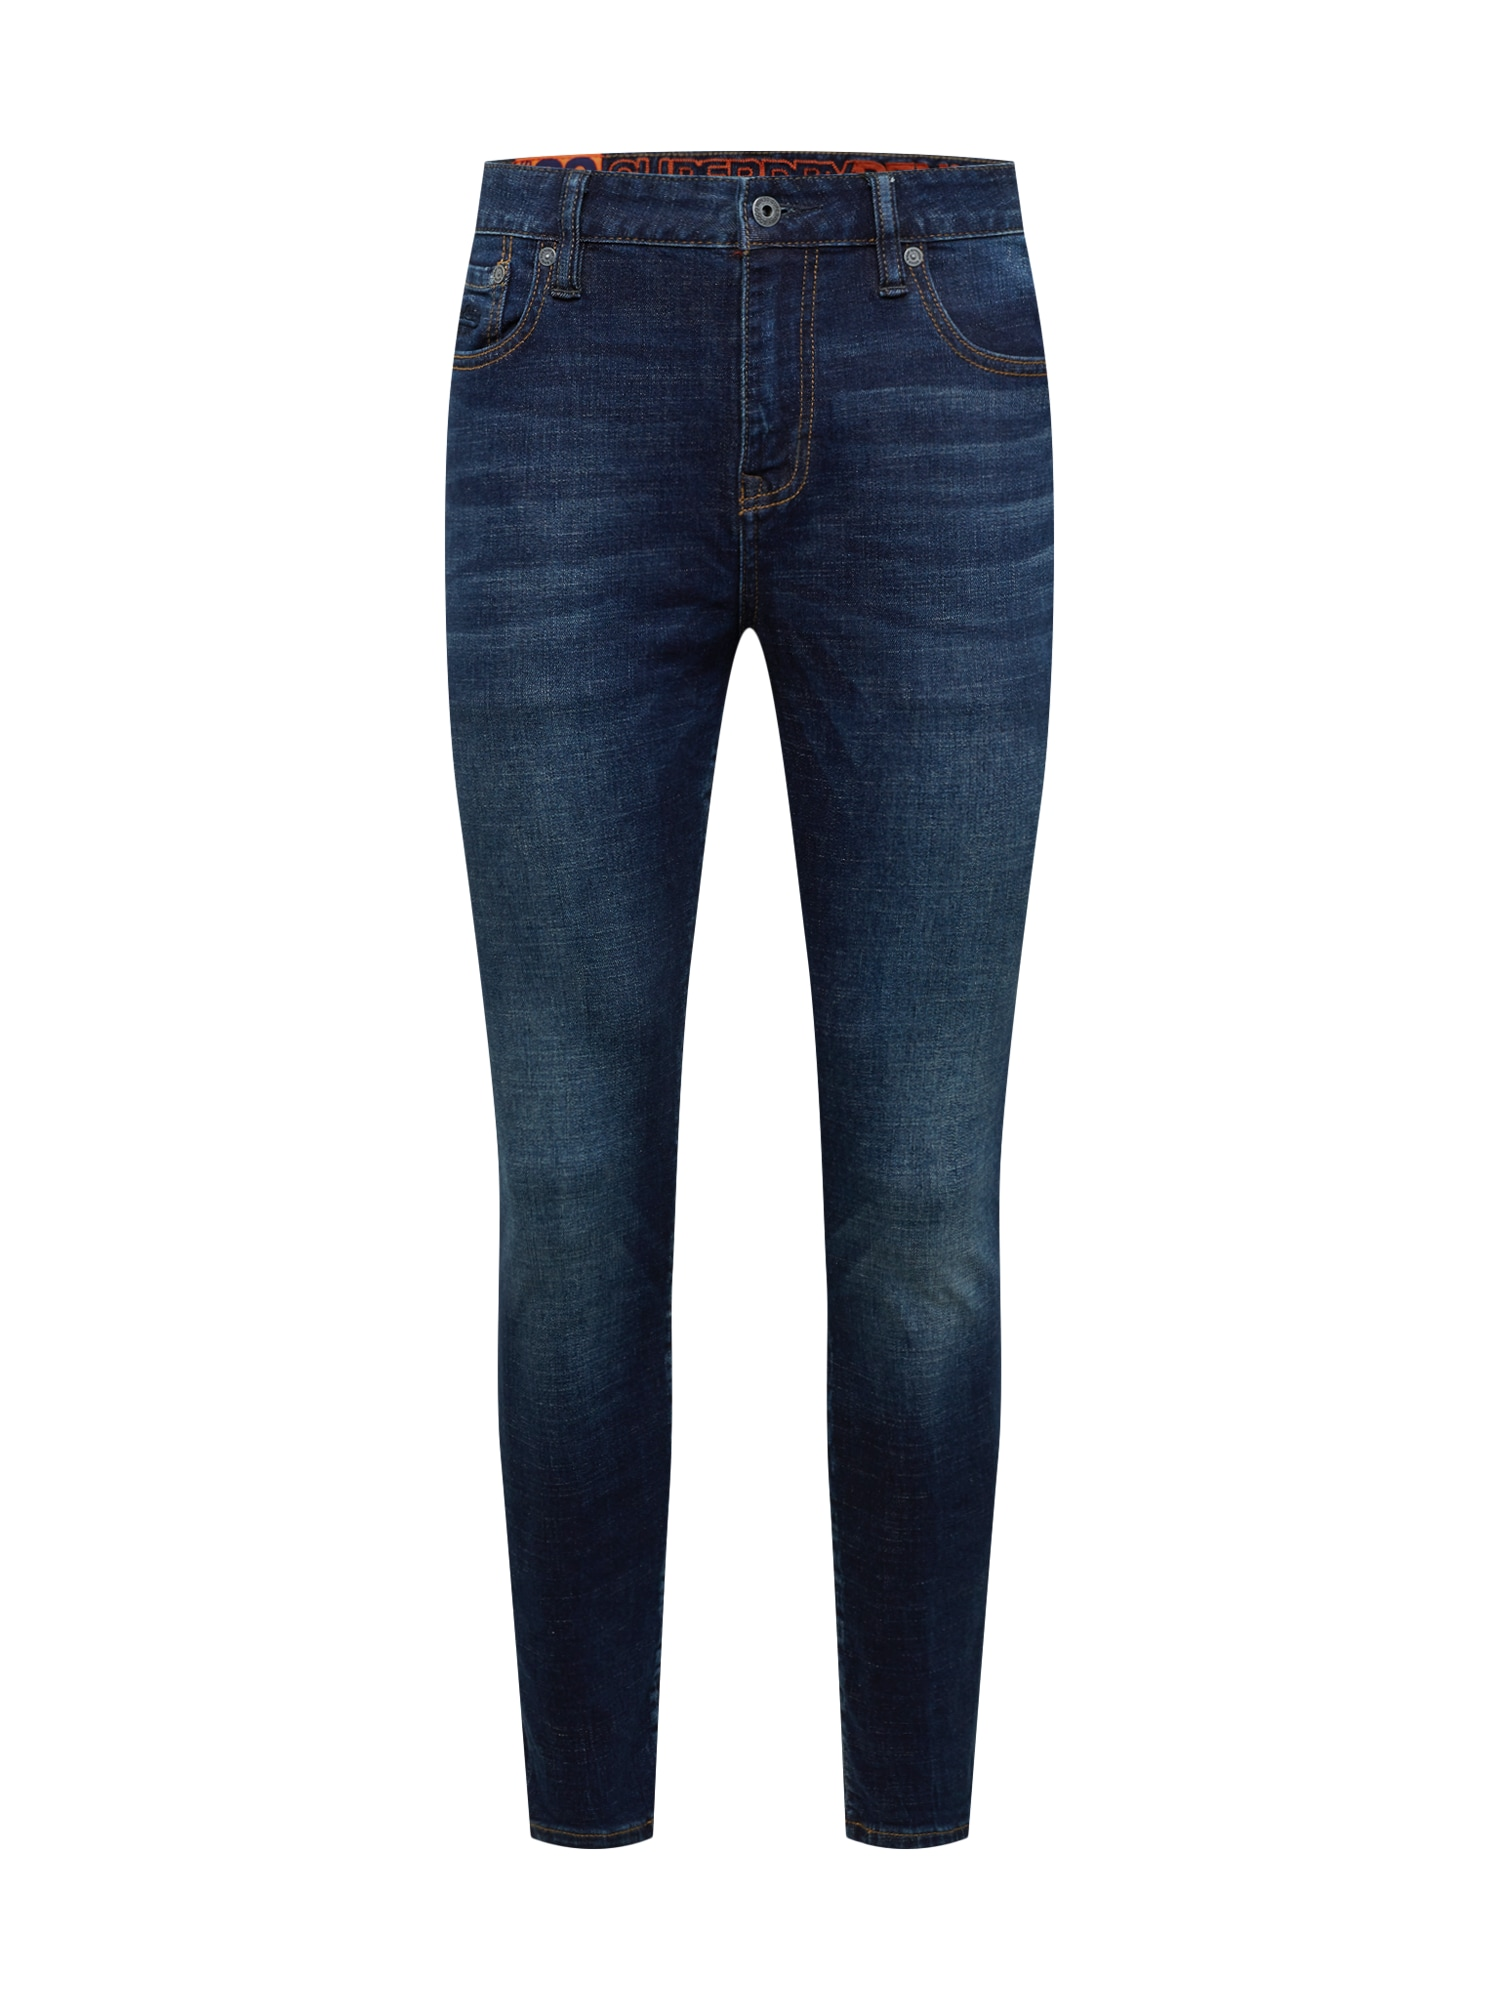 Superdry Džínsy 'TRAVIS SKINNY'  modrá denim